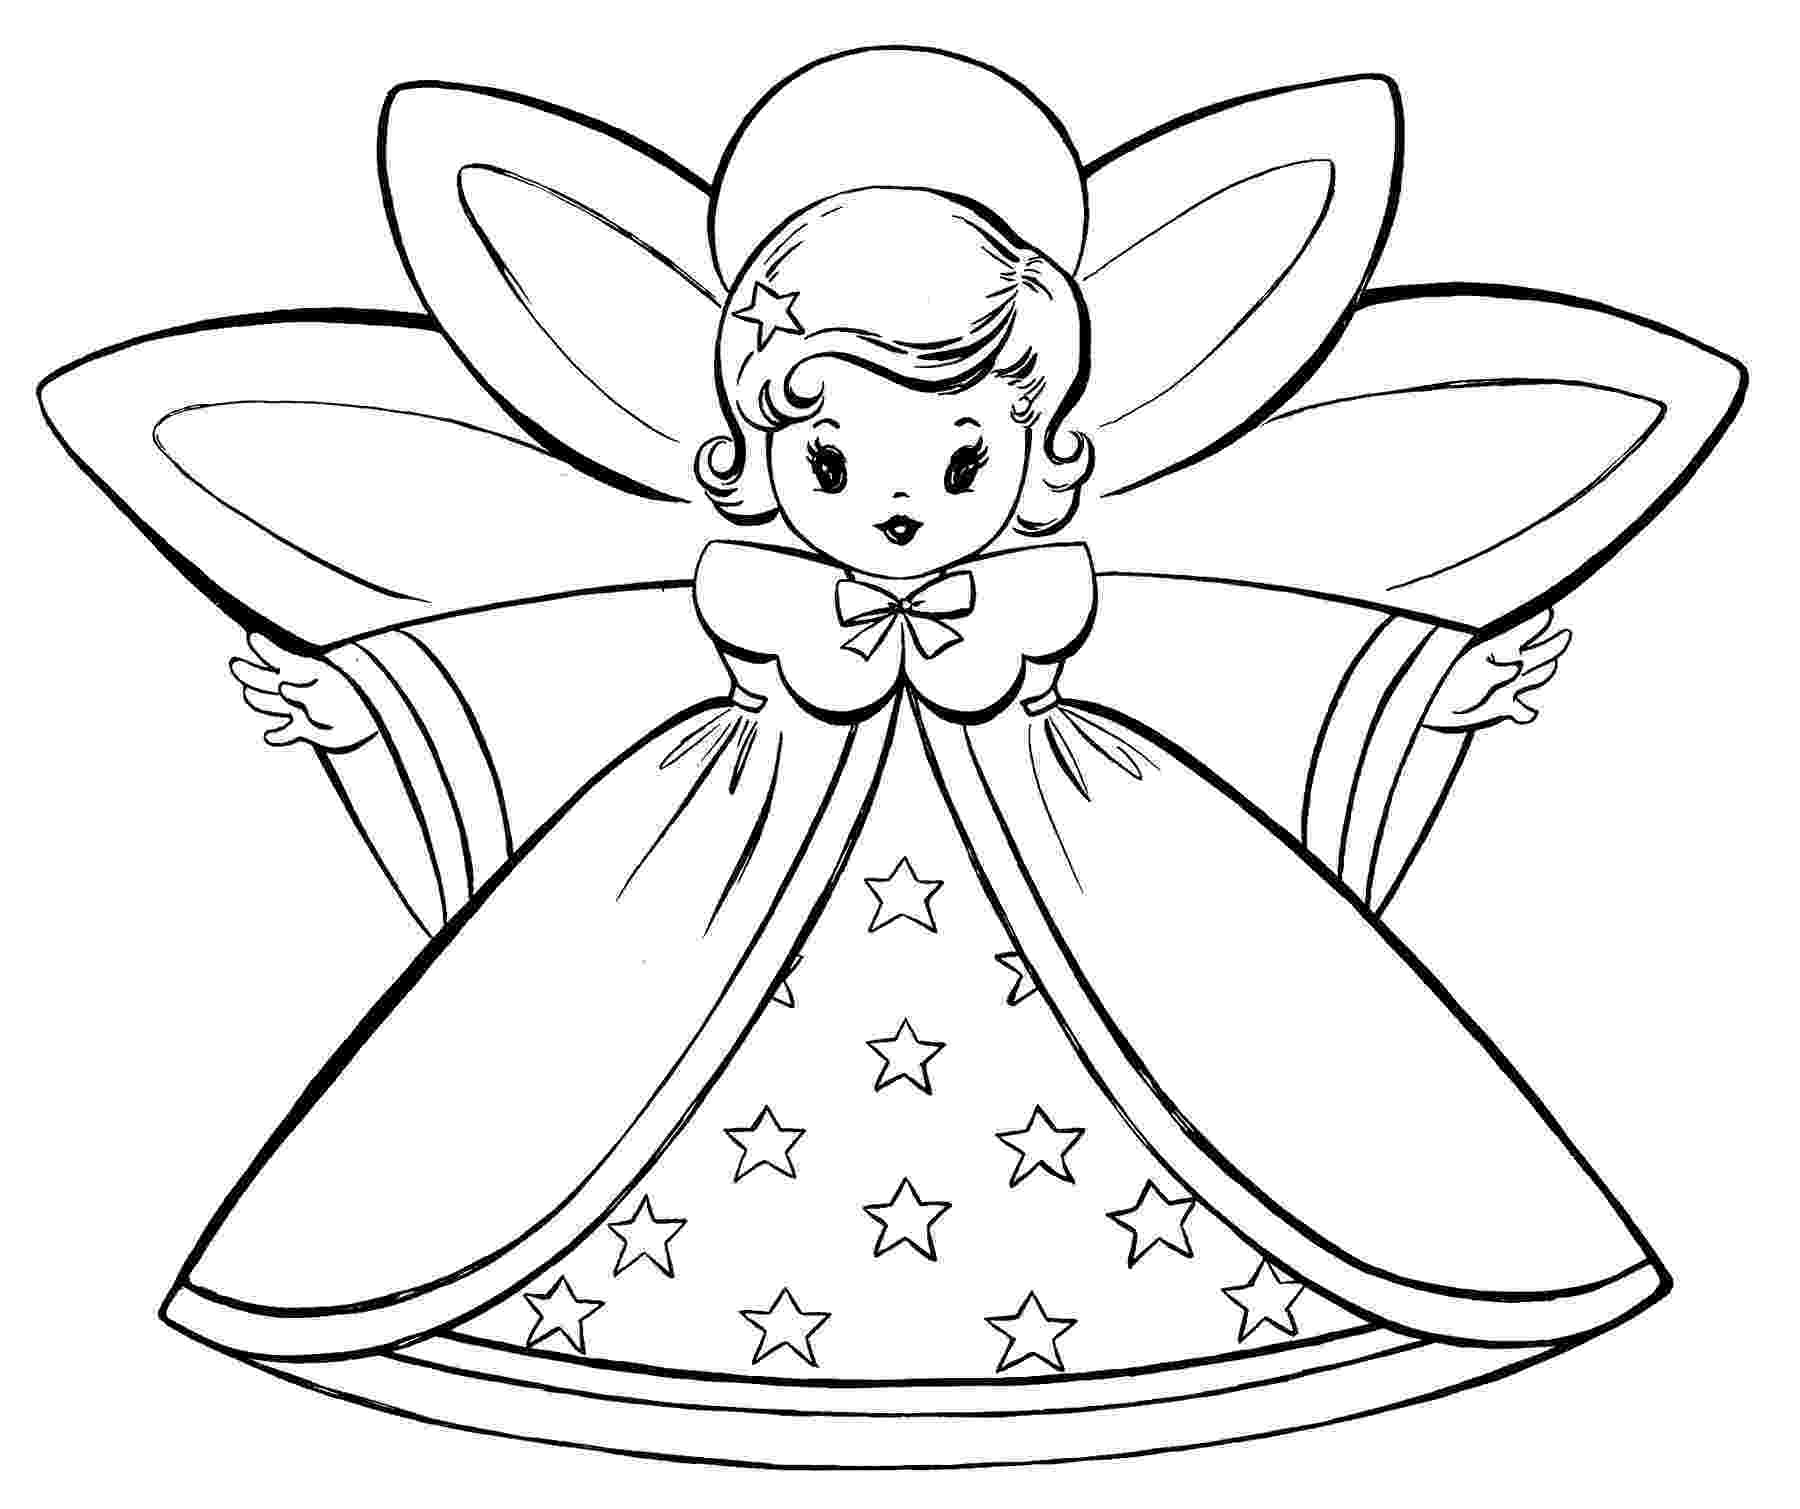 coloring pages of angels angel coloring pages for adults coloring home angels coloring of pages